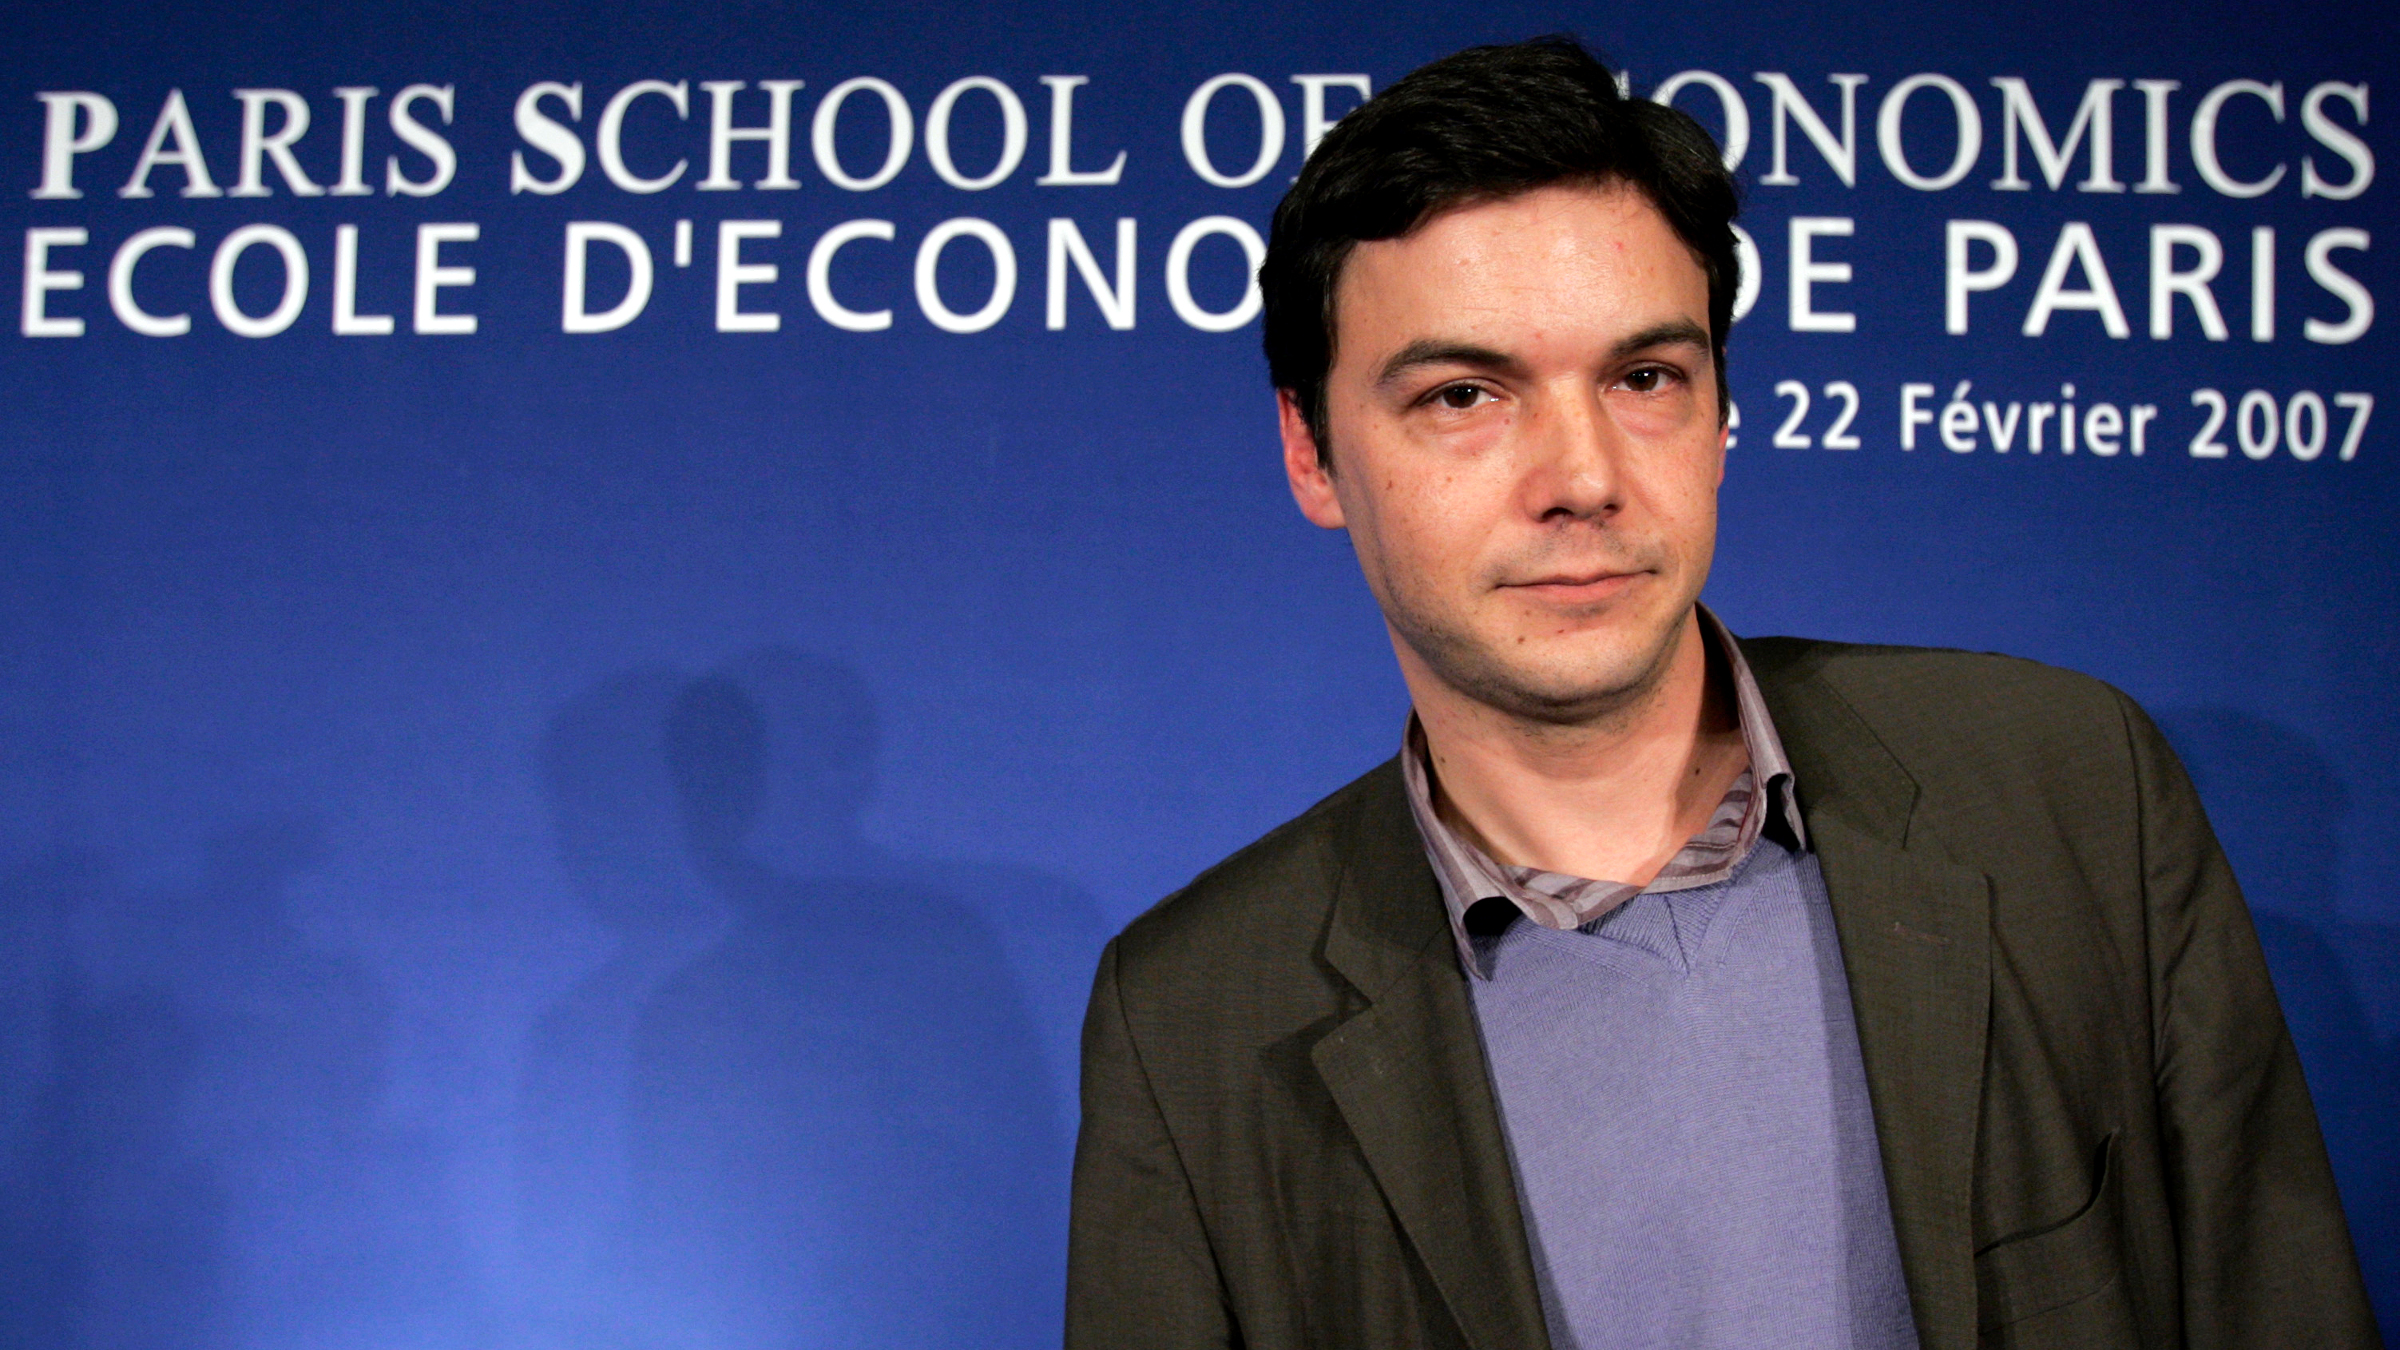 Thomas Piketty, director of the Paris School of Economics (PSE), attends the inauguration of the school in Paris, February 22, 2007.